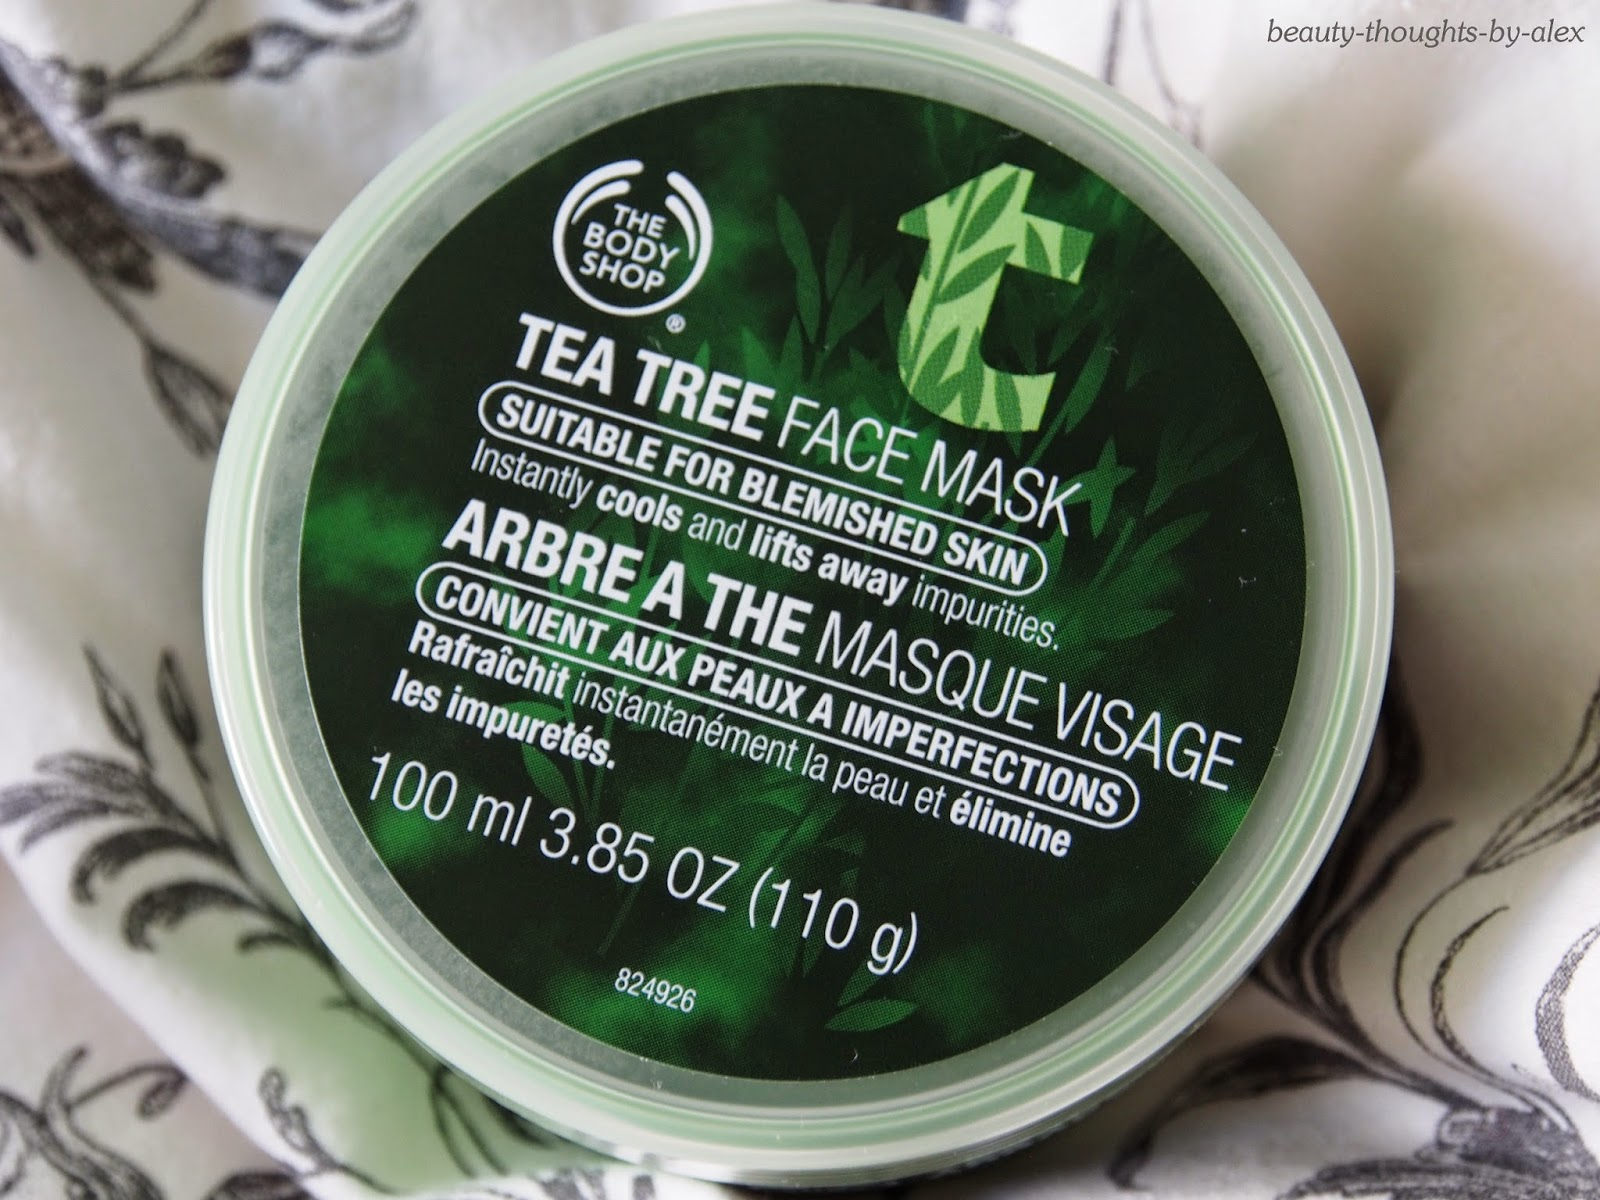 Tea Tree Face Mask The Body Shop